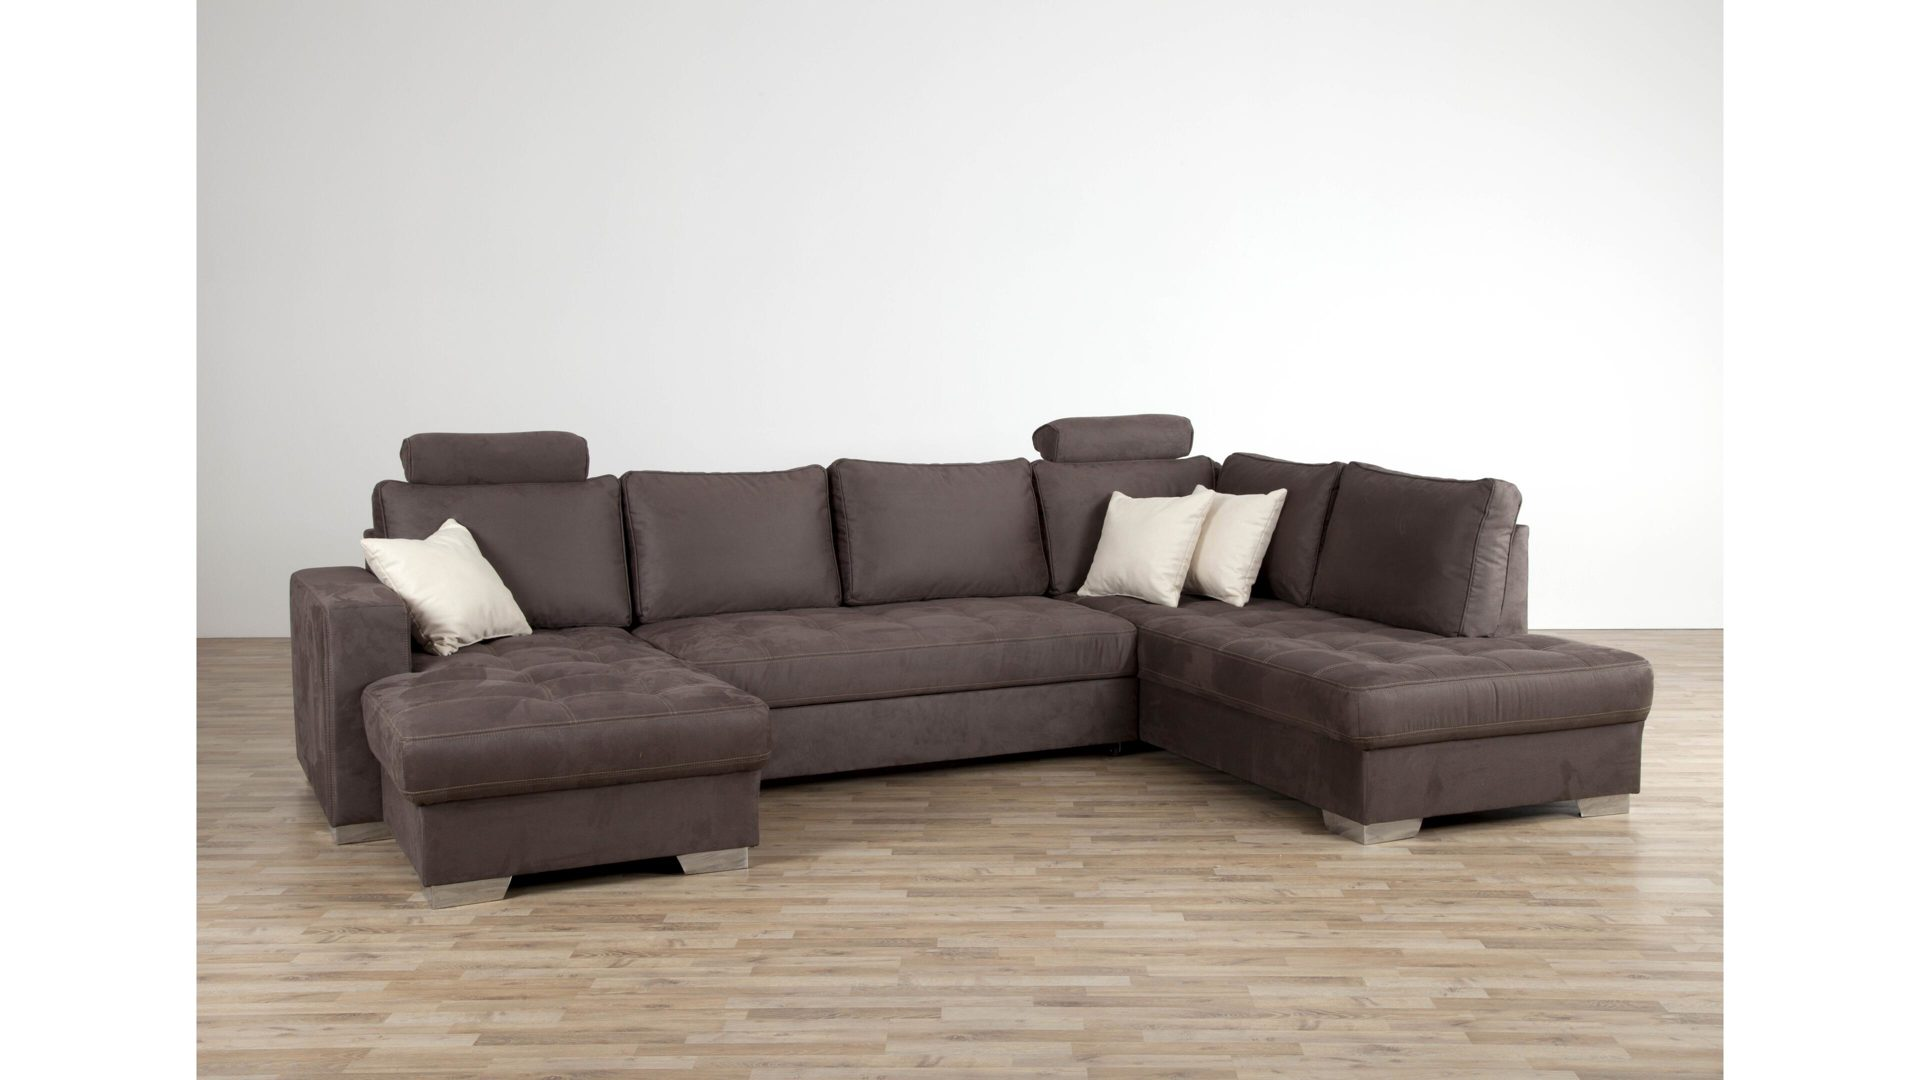 Ecksofas Sofakultur Eckkombination Interliving Wohnlandschaft